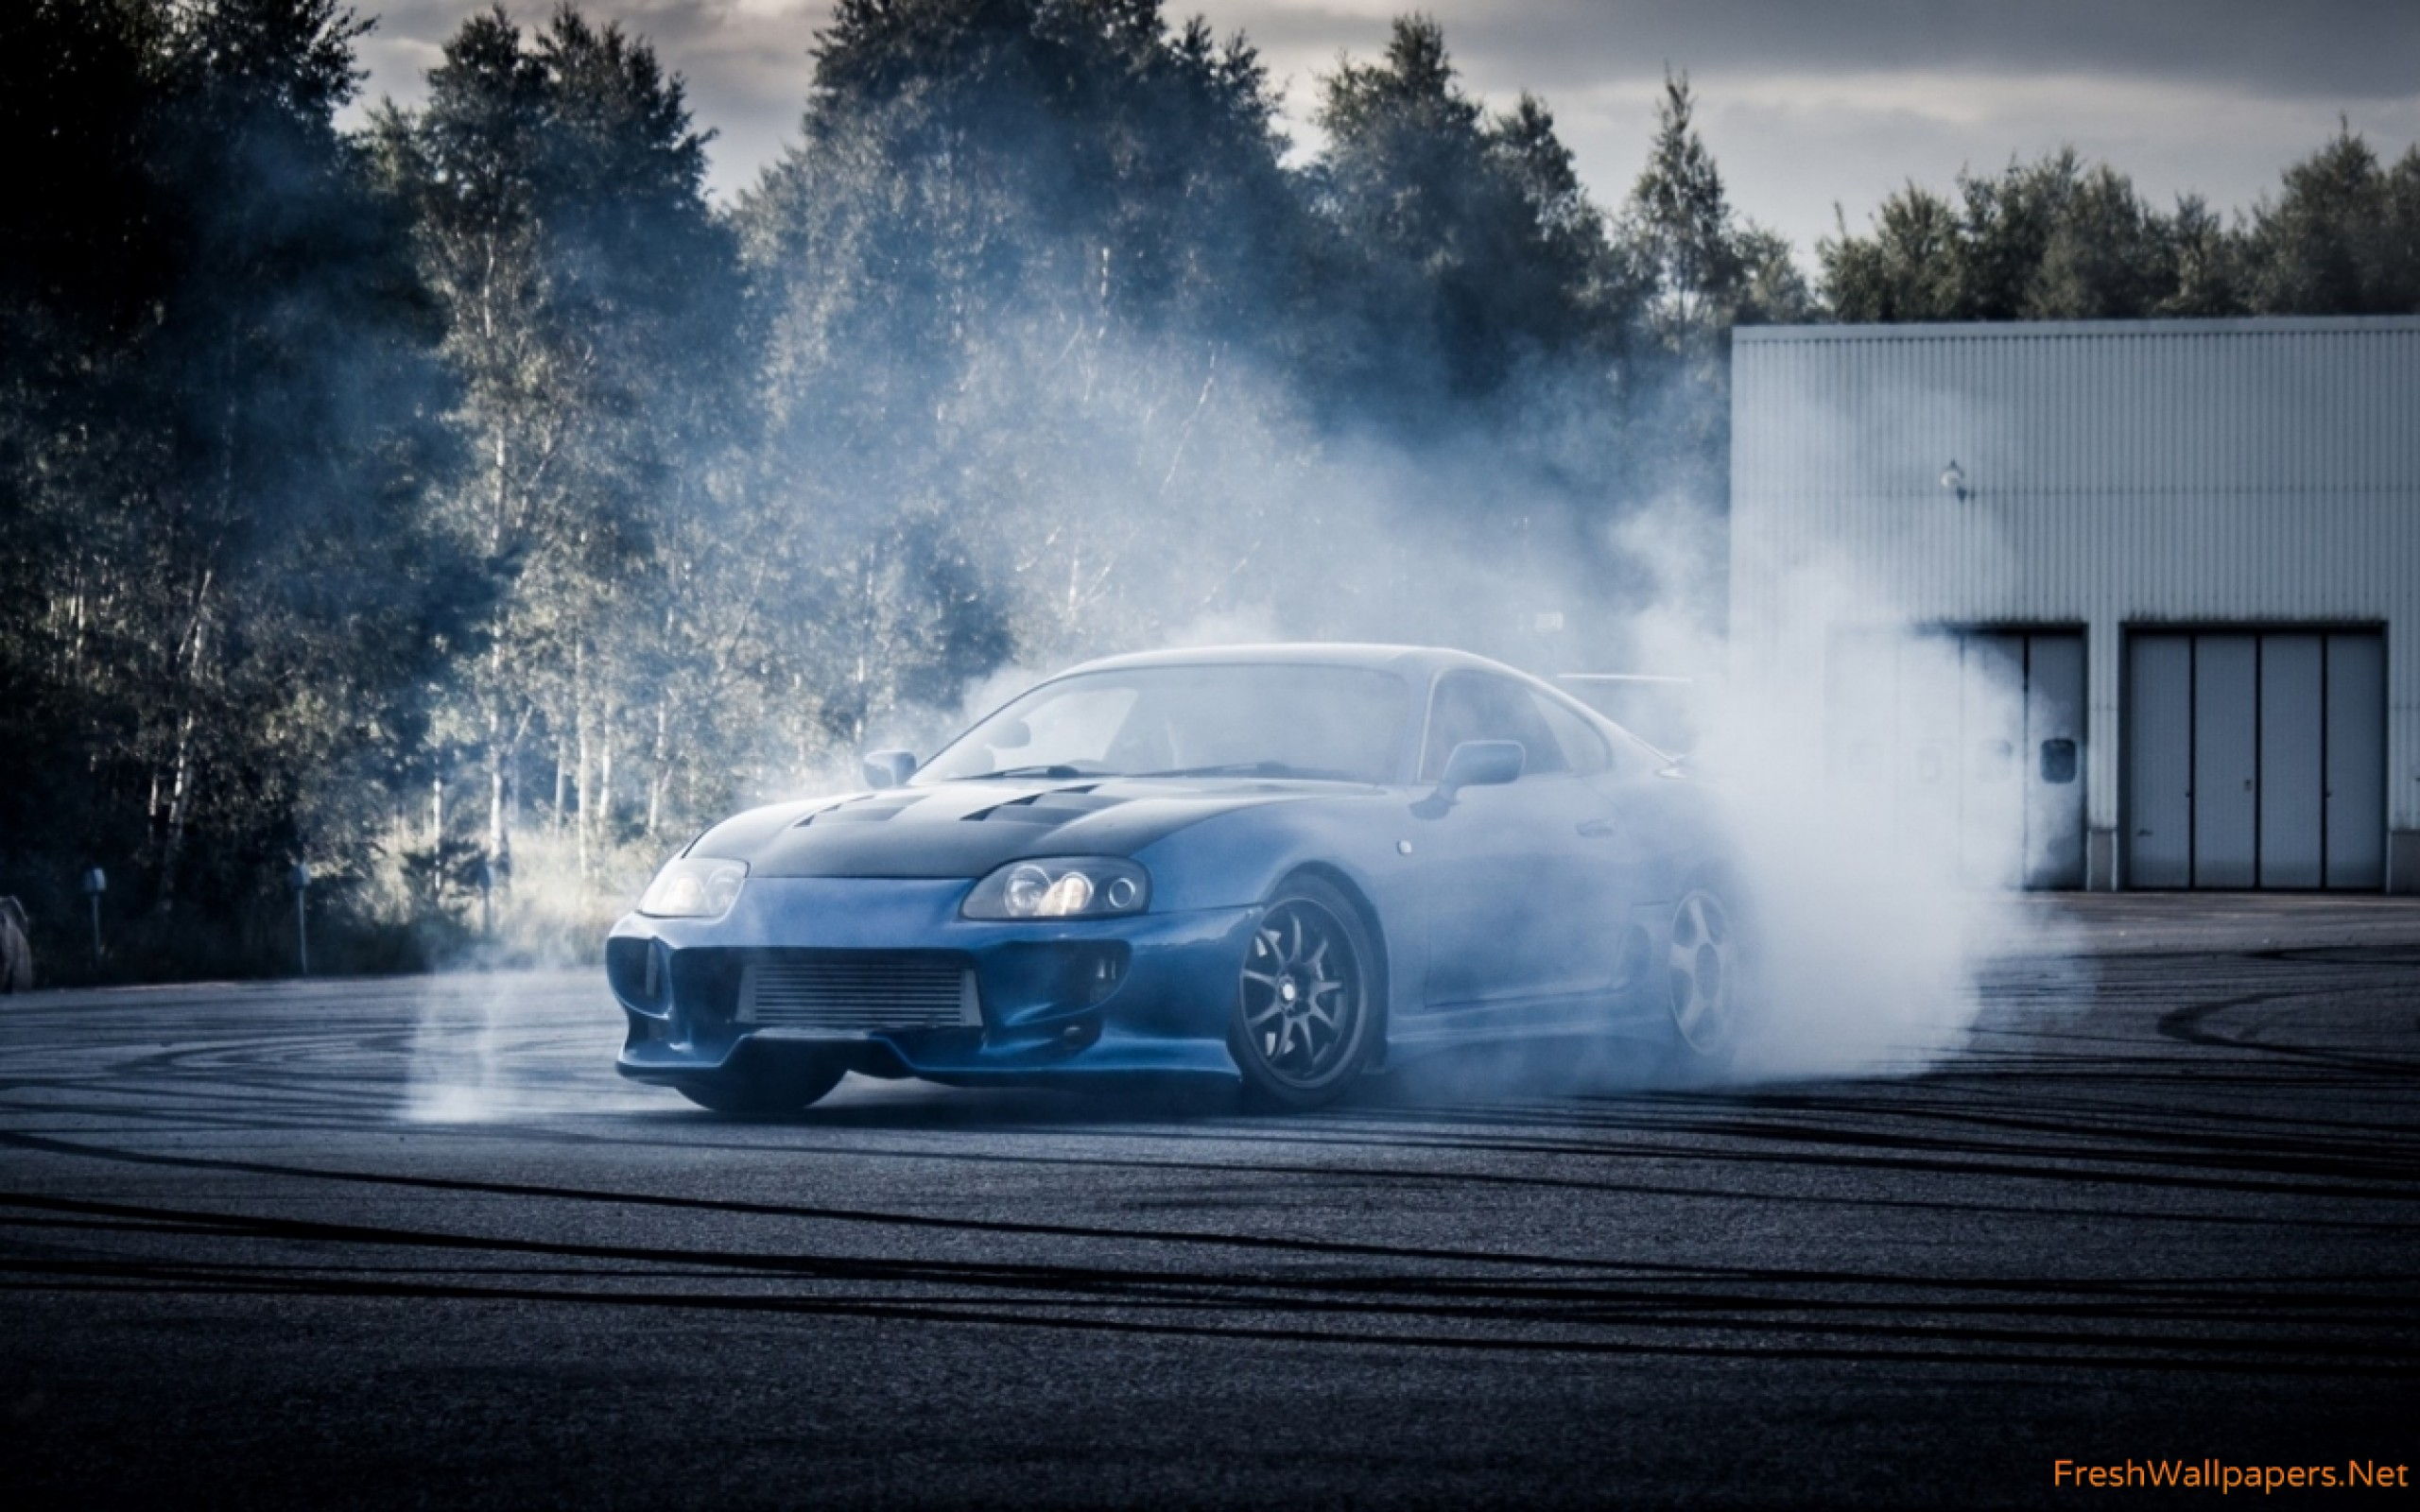 Hi Guys I Need A Toyota Supra Wallpaper For My Mobile I Ve Searched